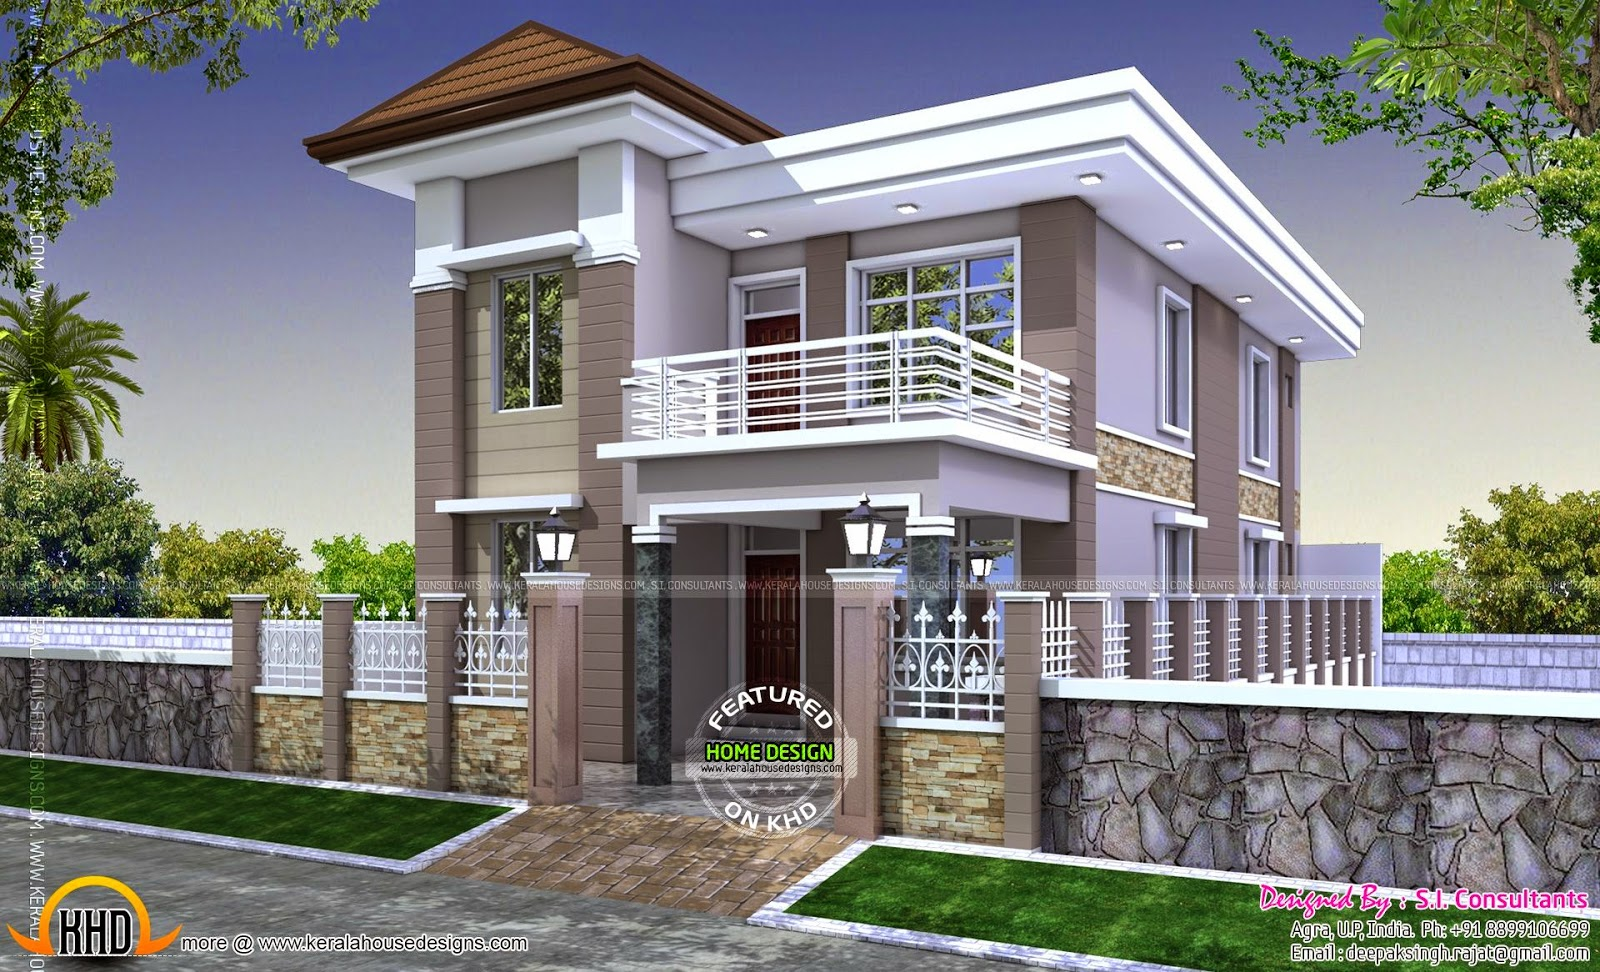 Duplex house plan India - Kerala home design and floor plans